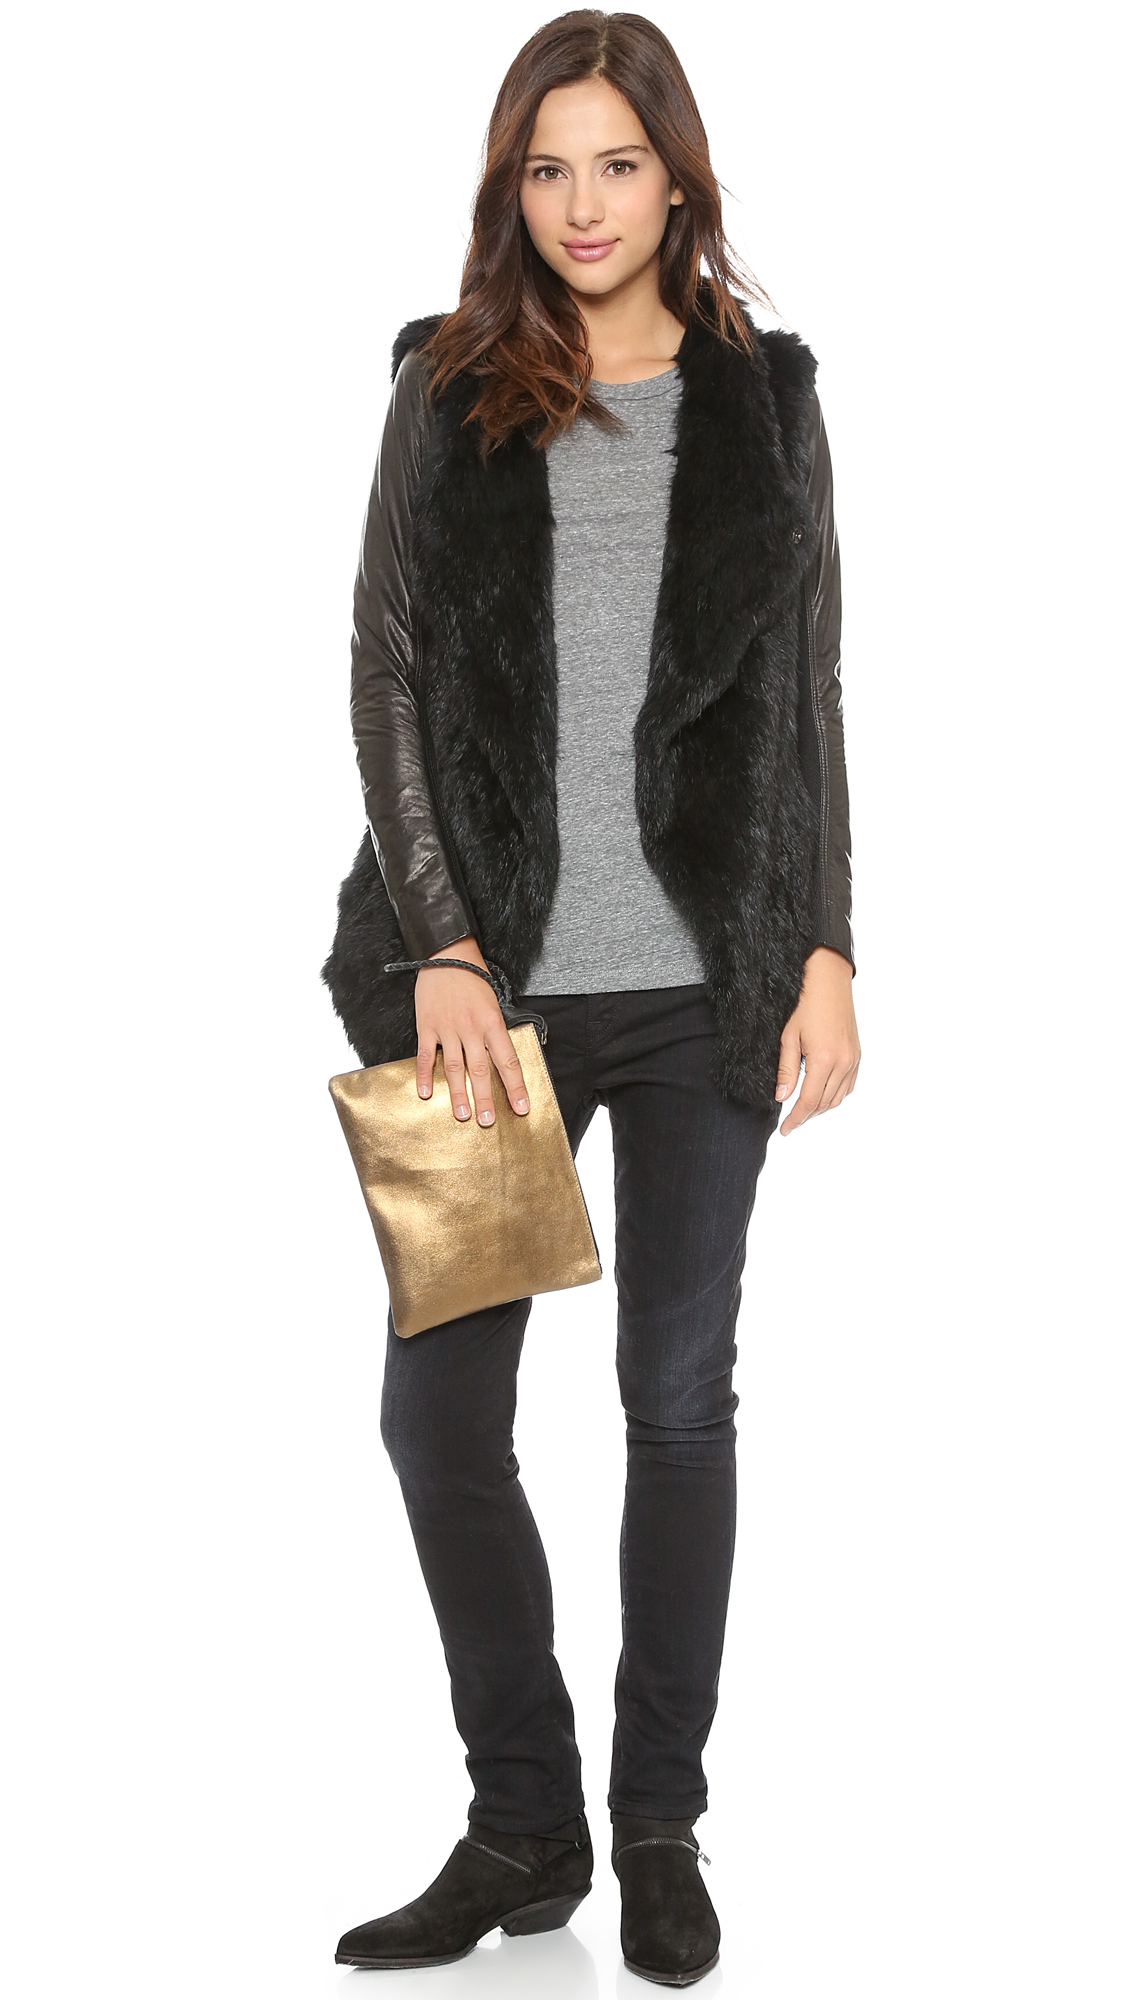 June Knit Fur Jacket With Leather Sleeves - Black in Black | Lyst